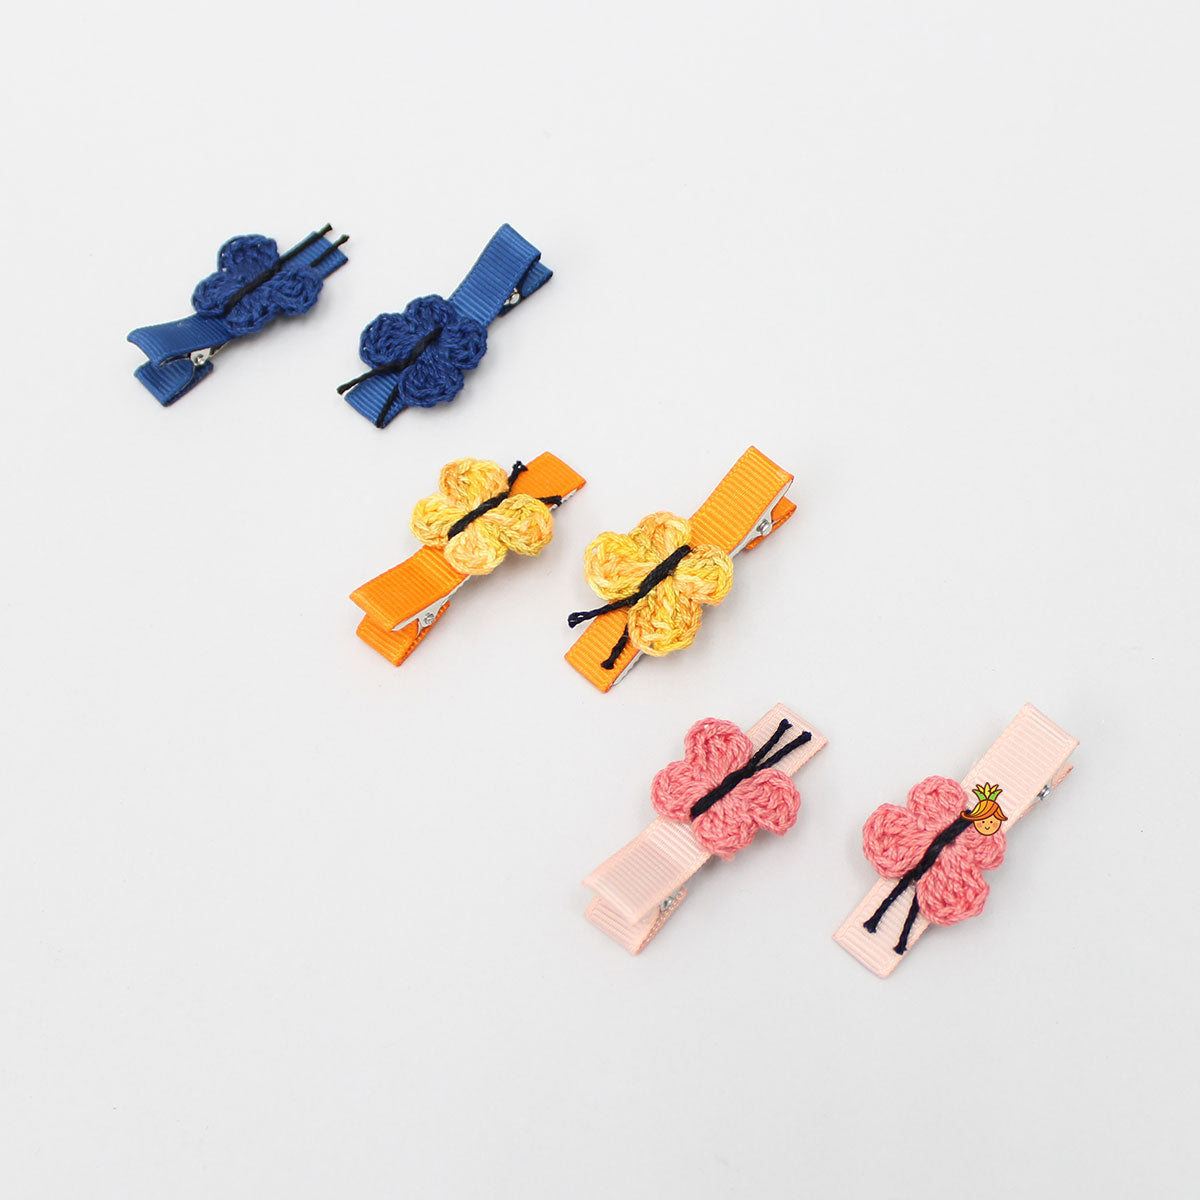 Small Butterfly Alligator 6 Clip Set - 3